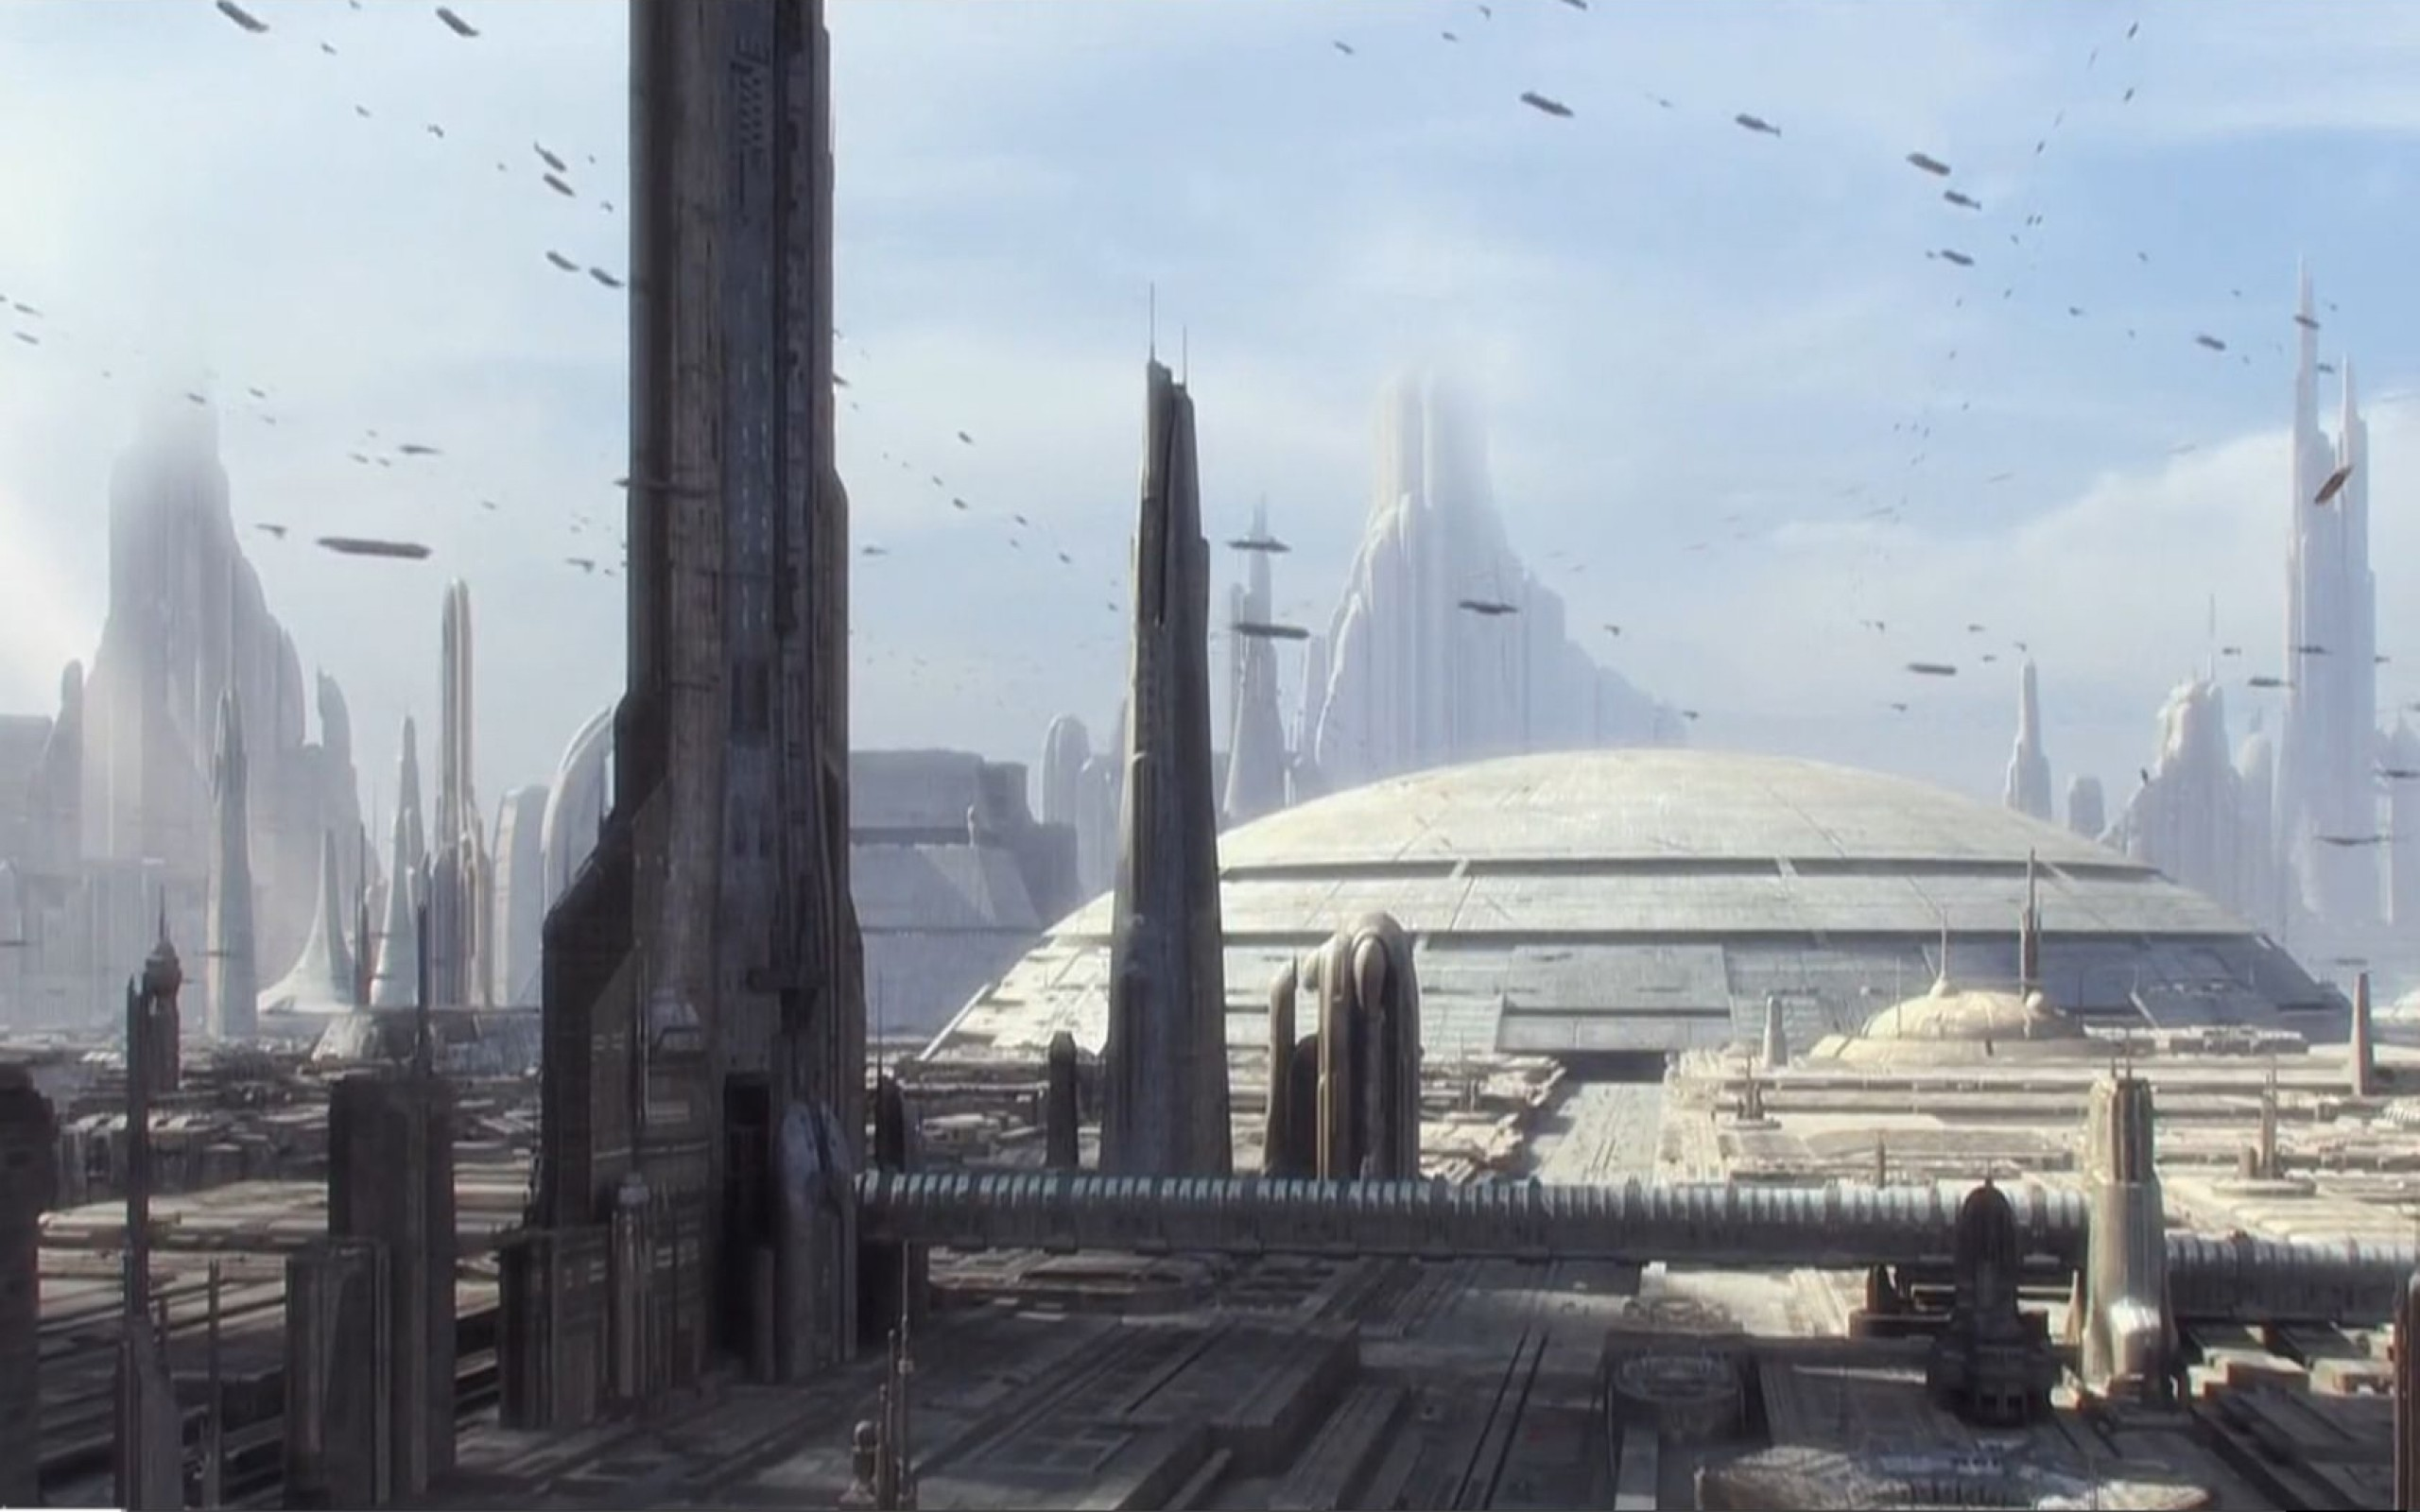 Star Wars Coruscant Background 1366703 Hd Wallpaper Backgrounds Download